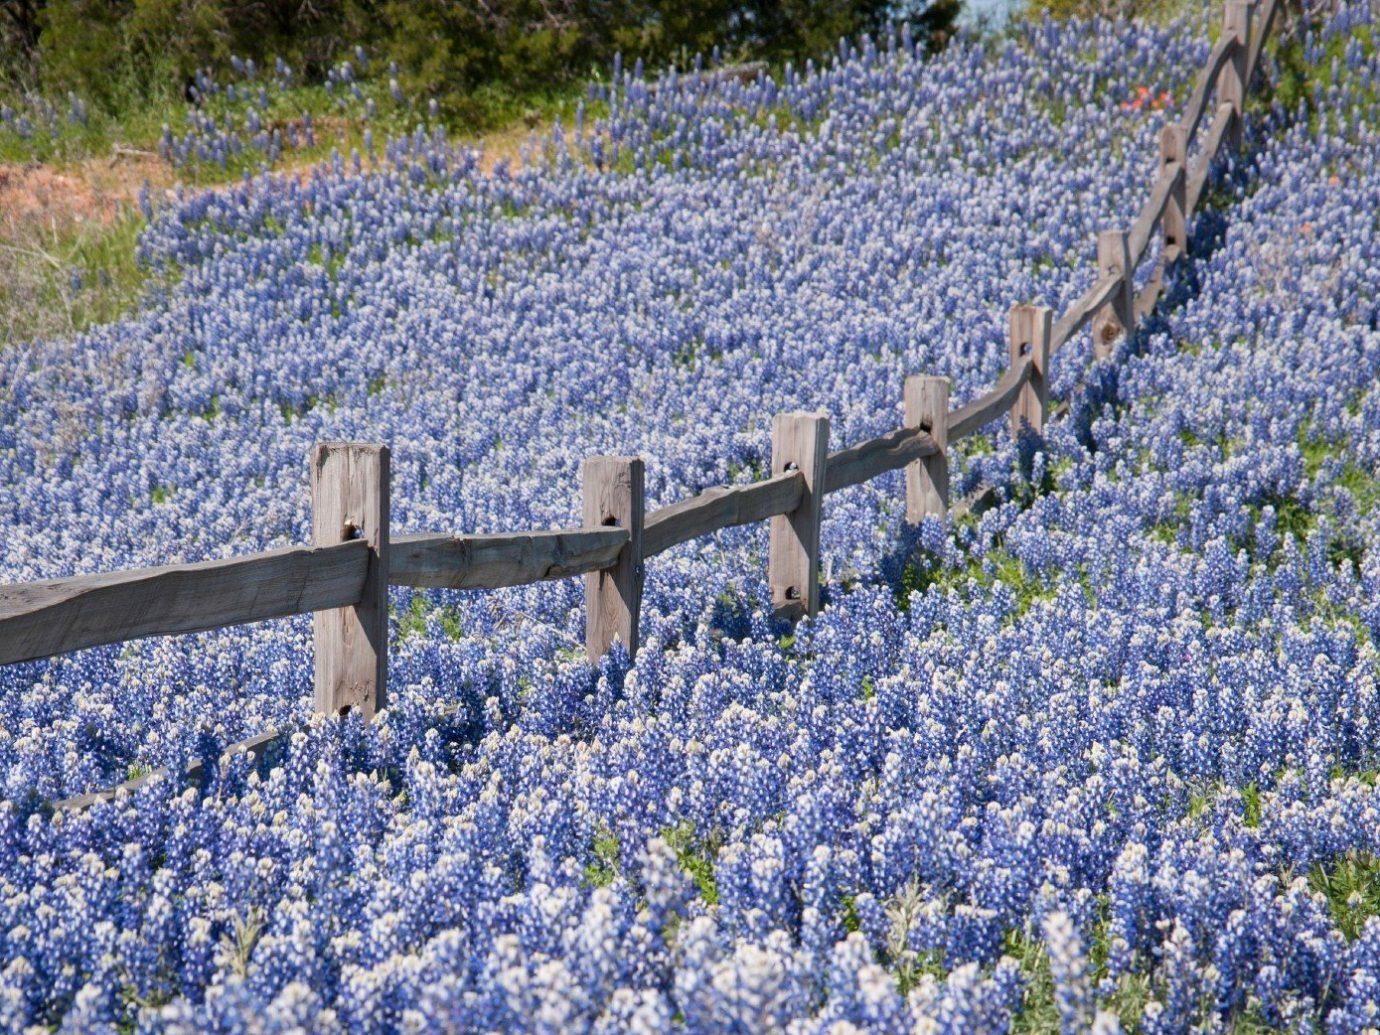 Travel Tips tree flower outdoor Fence lavender bluebonnet plant lupin english lavender flora botany land plant flowering plant field wildflower meadow blossom woodland frost